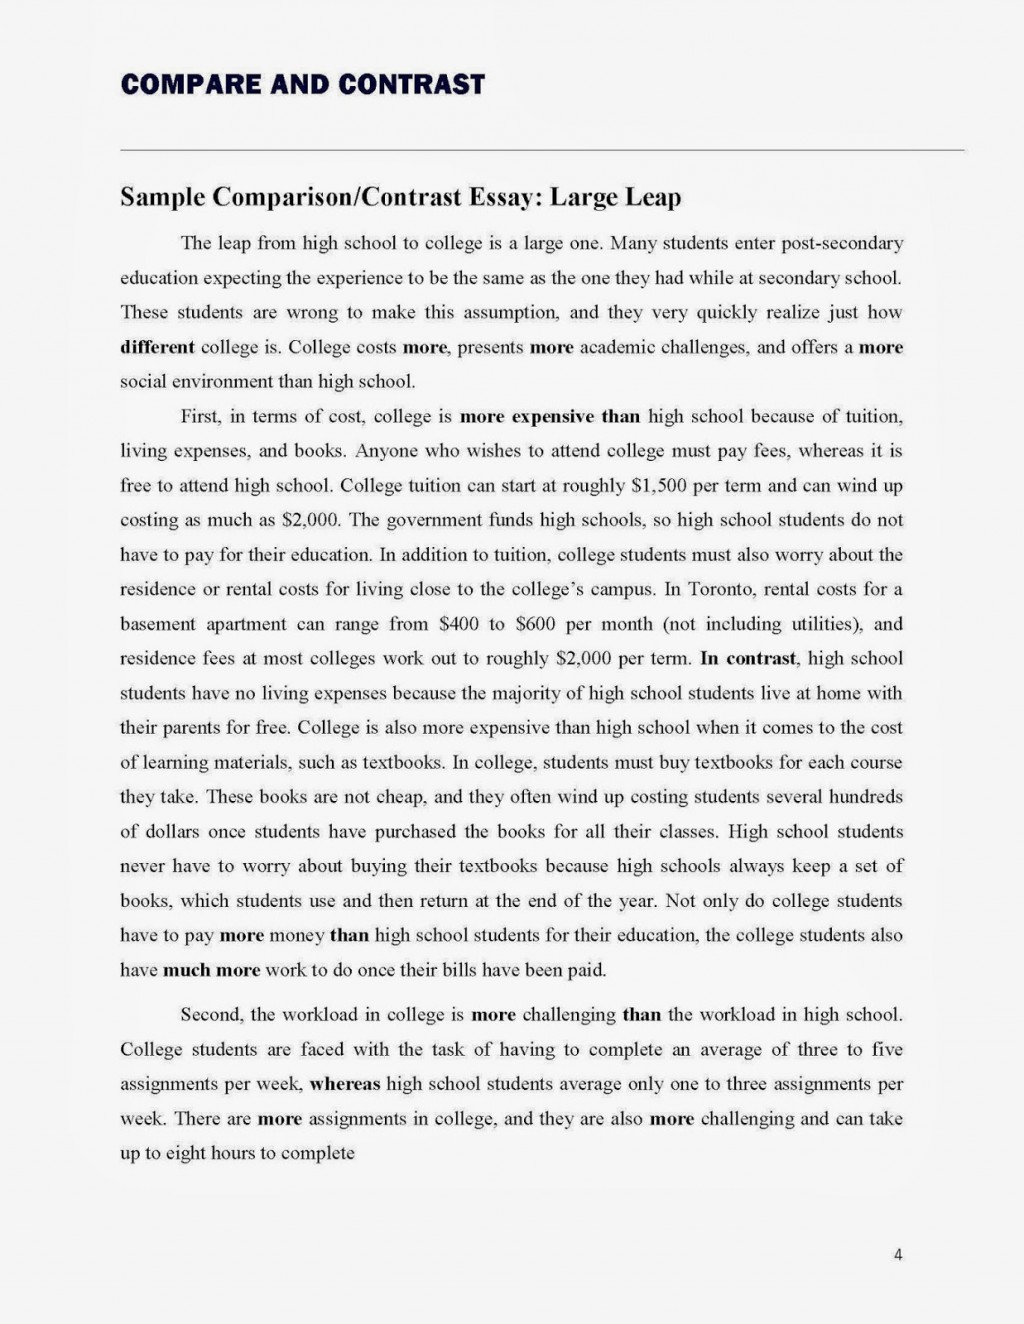 014 Compare2band2bcontrast2bessay Page 4 Essay Example Ucf Prompt Archaicawful 2017 Large